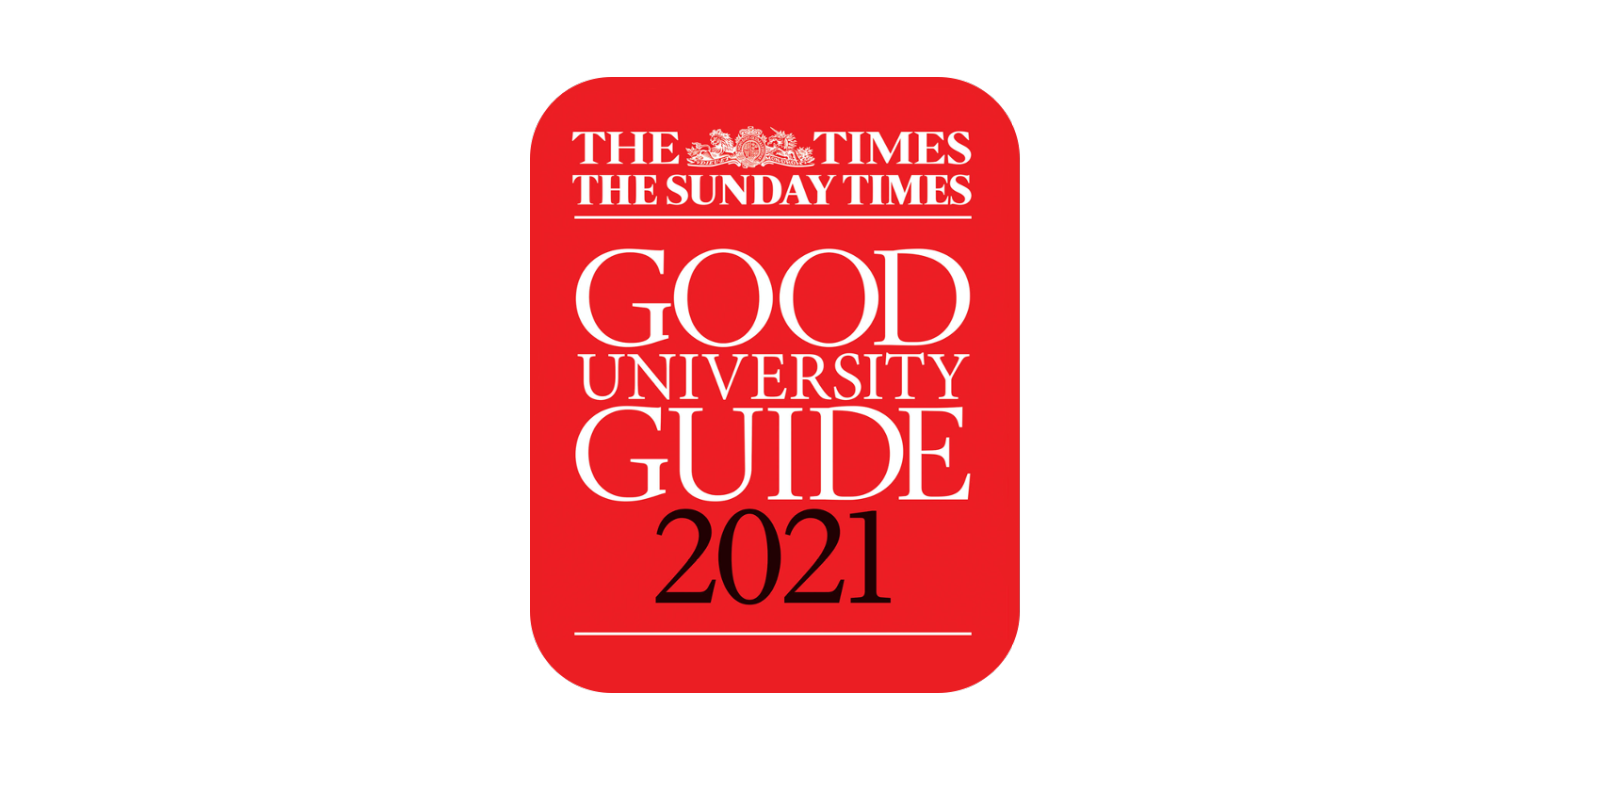 Leeds places in the top 10 in the Good University Guide